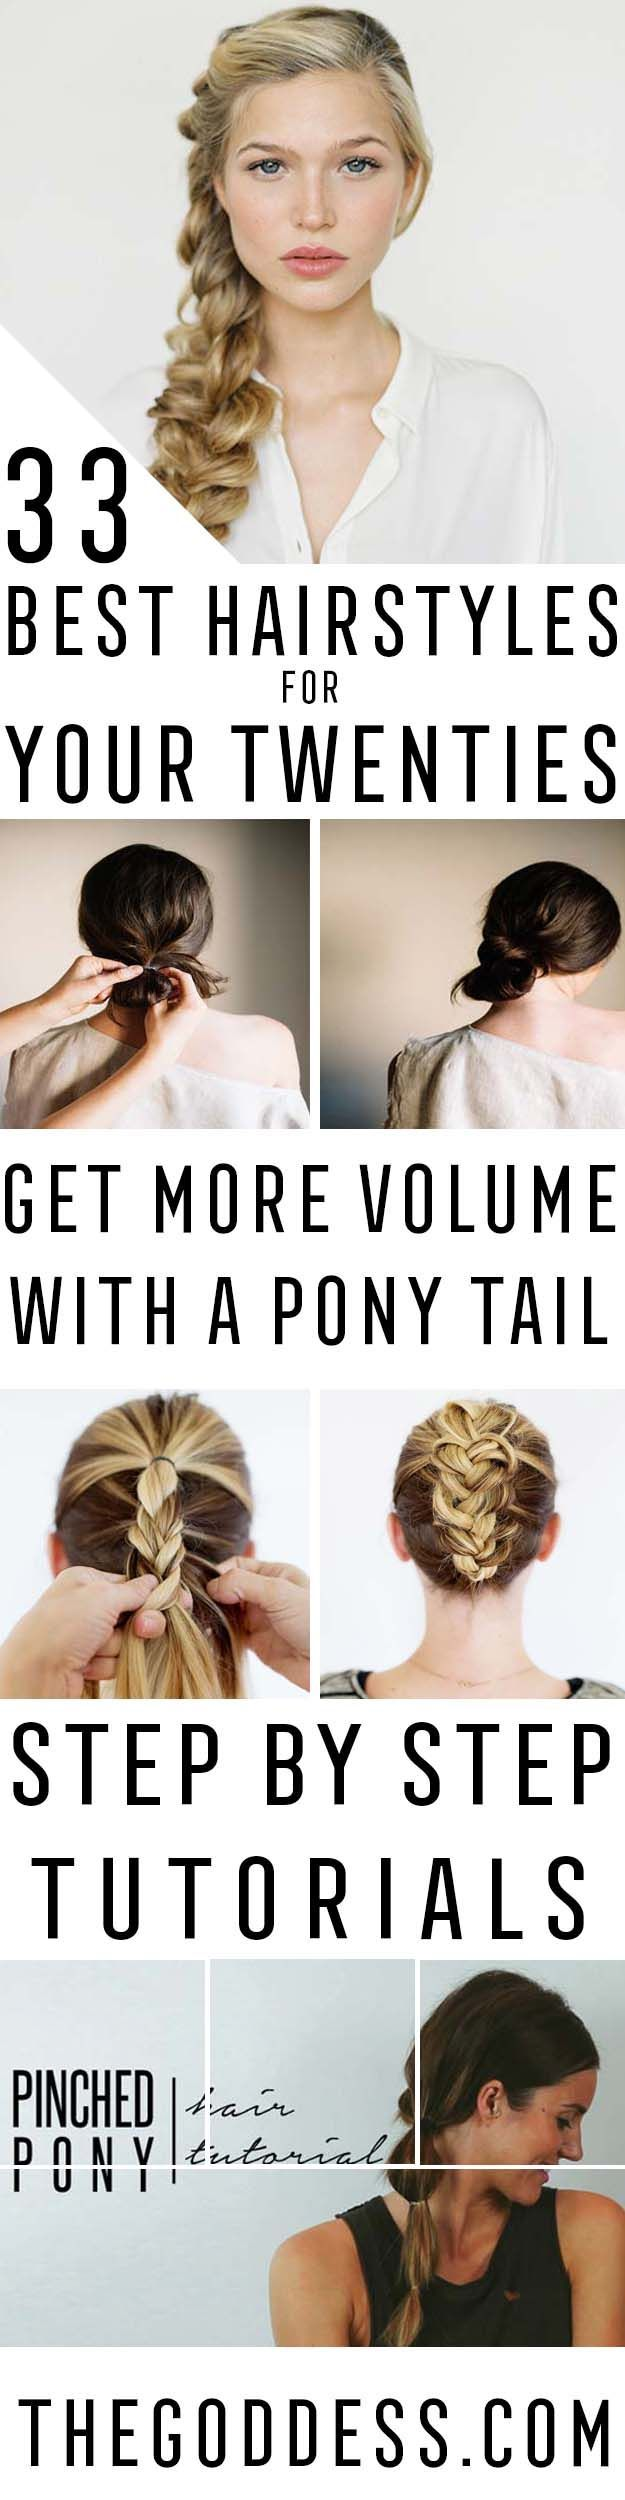 Best Hairstyles For Your 20s - Hair Dos And Don'ts For Your 20s, With The Best...